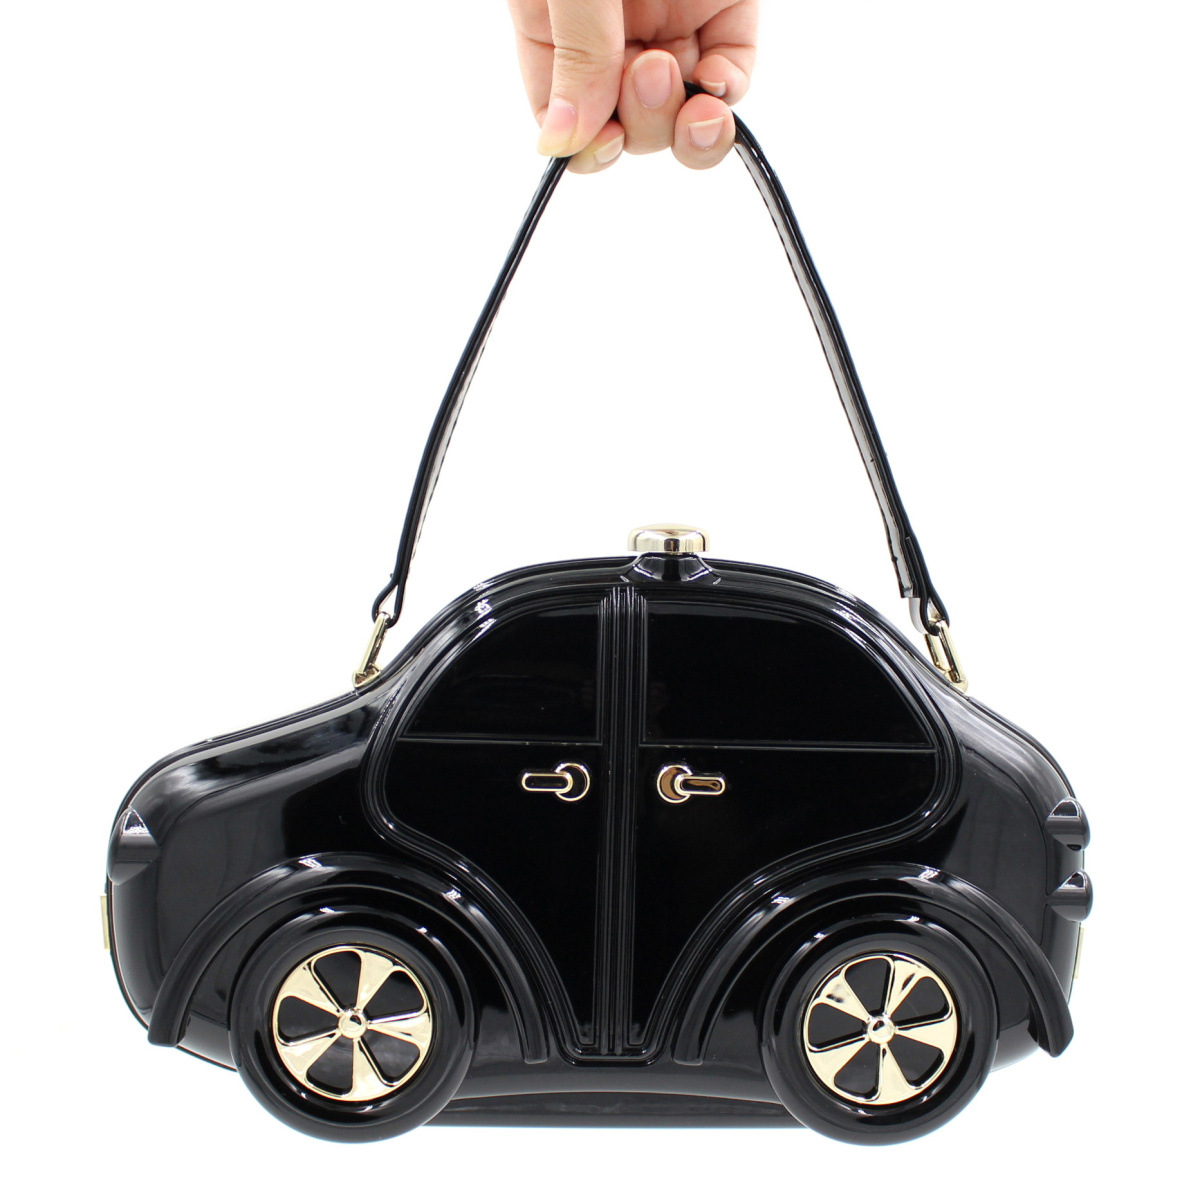 Car Shaped Acrylic Clutch Bag Evening Chain Shoulder Messenger Purses And Handbags Small Party Wedding In Bags From Luggage